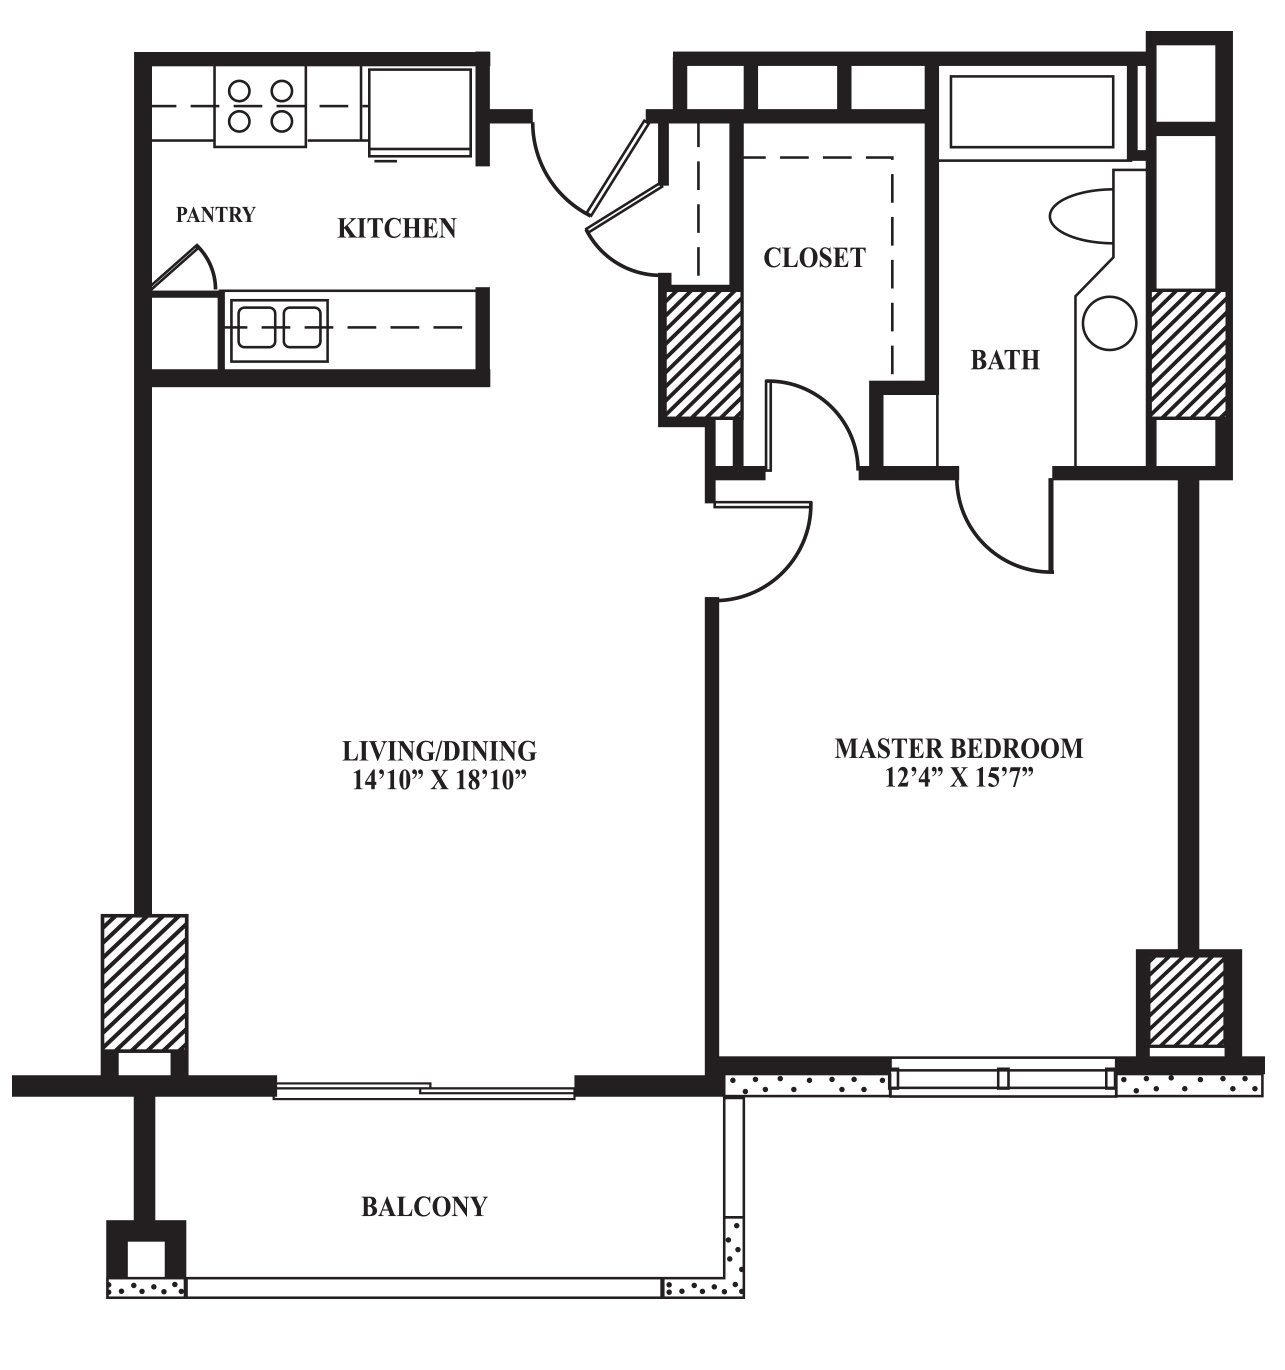 walk in closet floor plans floor plan b 742 sq ft the towers on park lane 5244